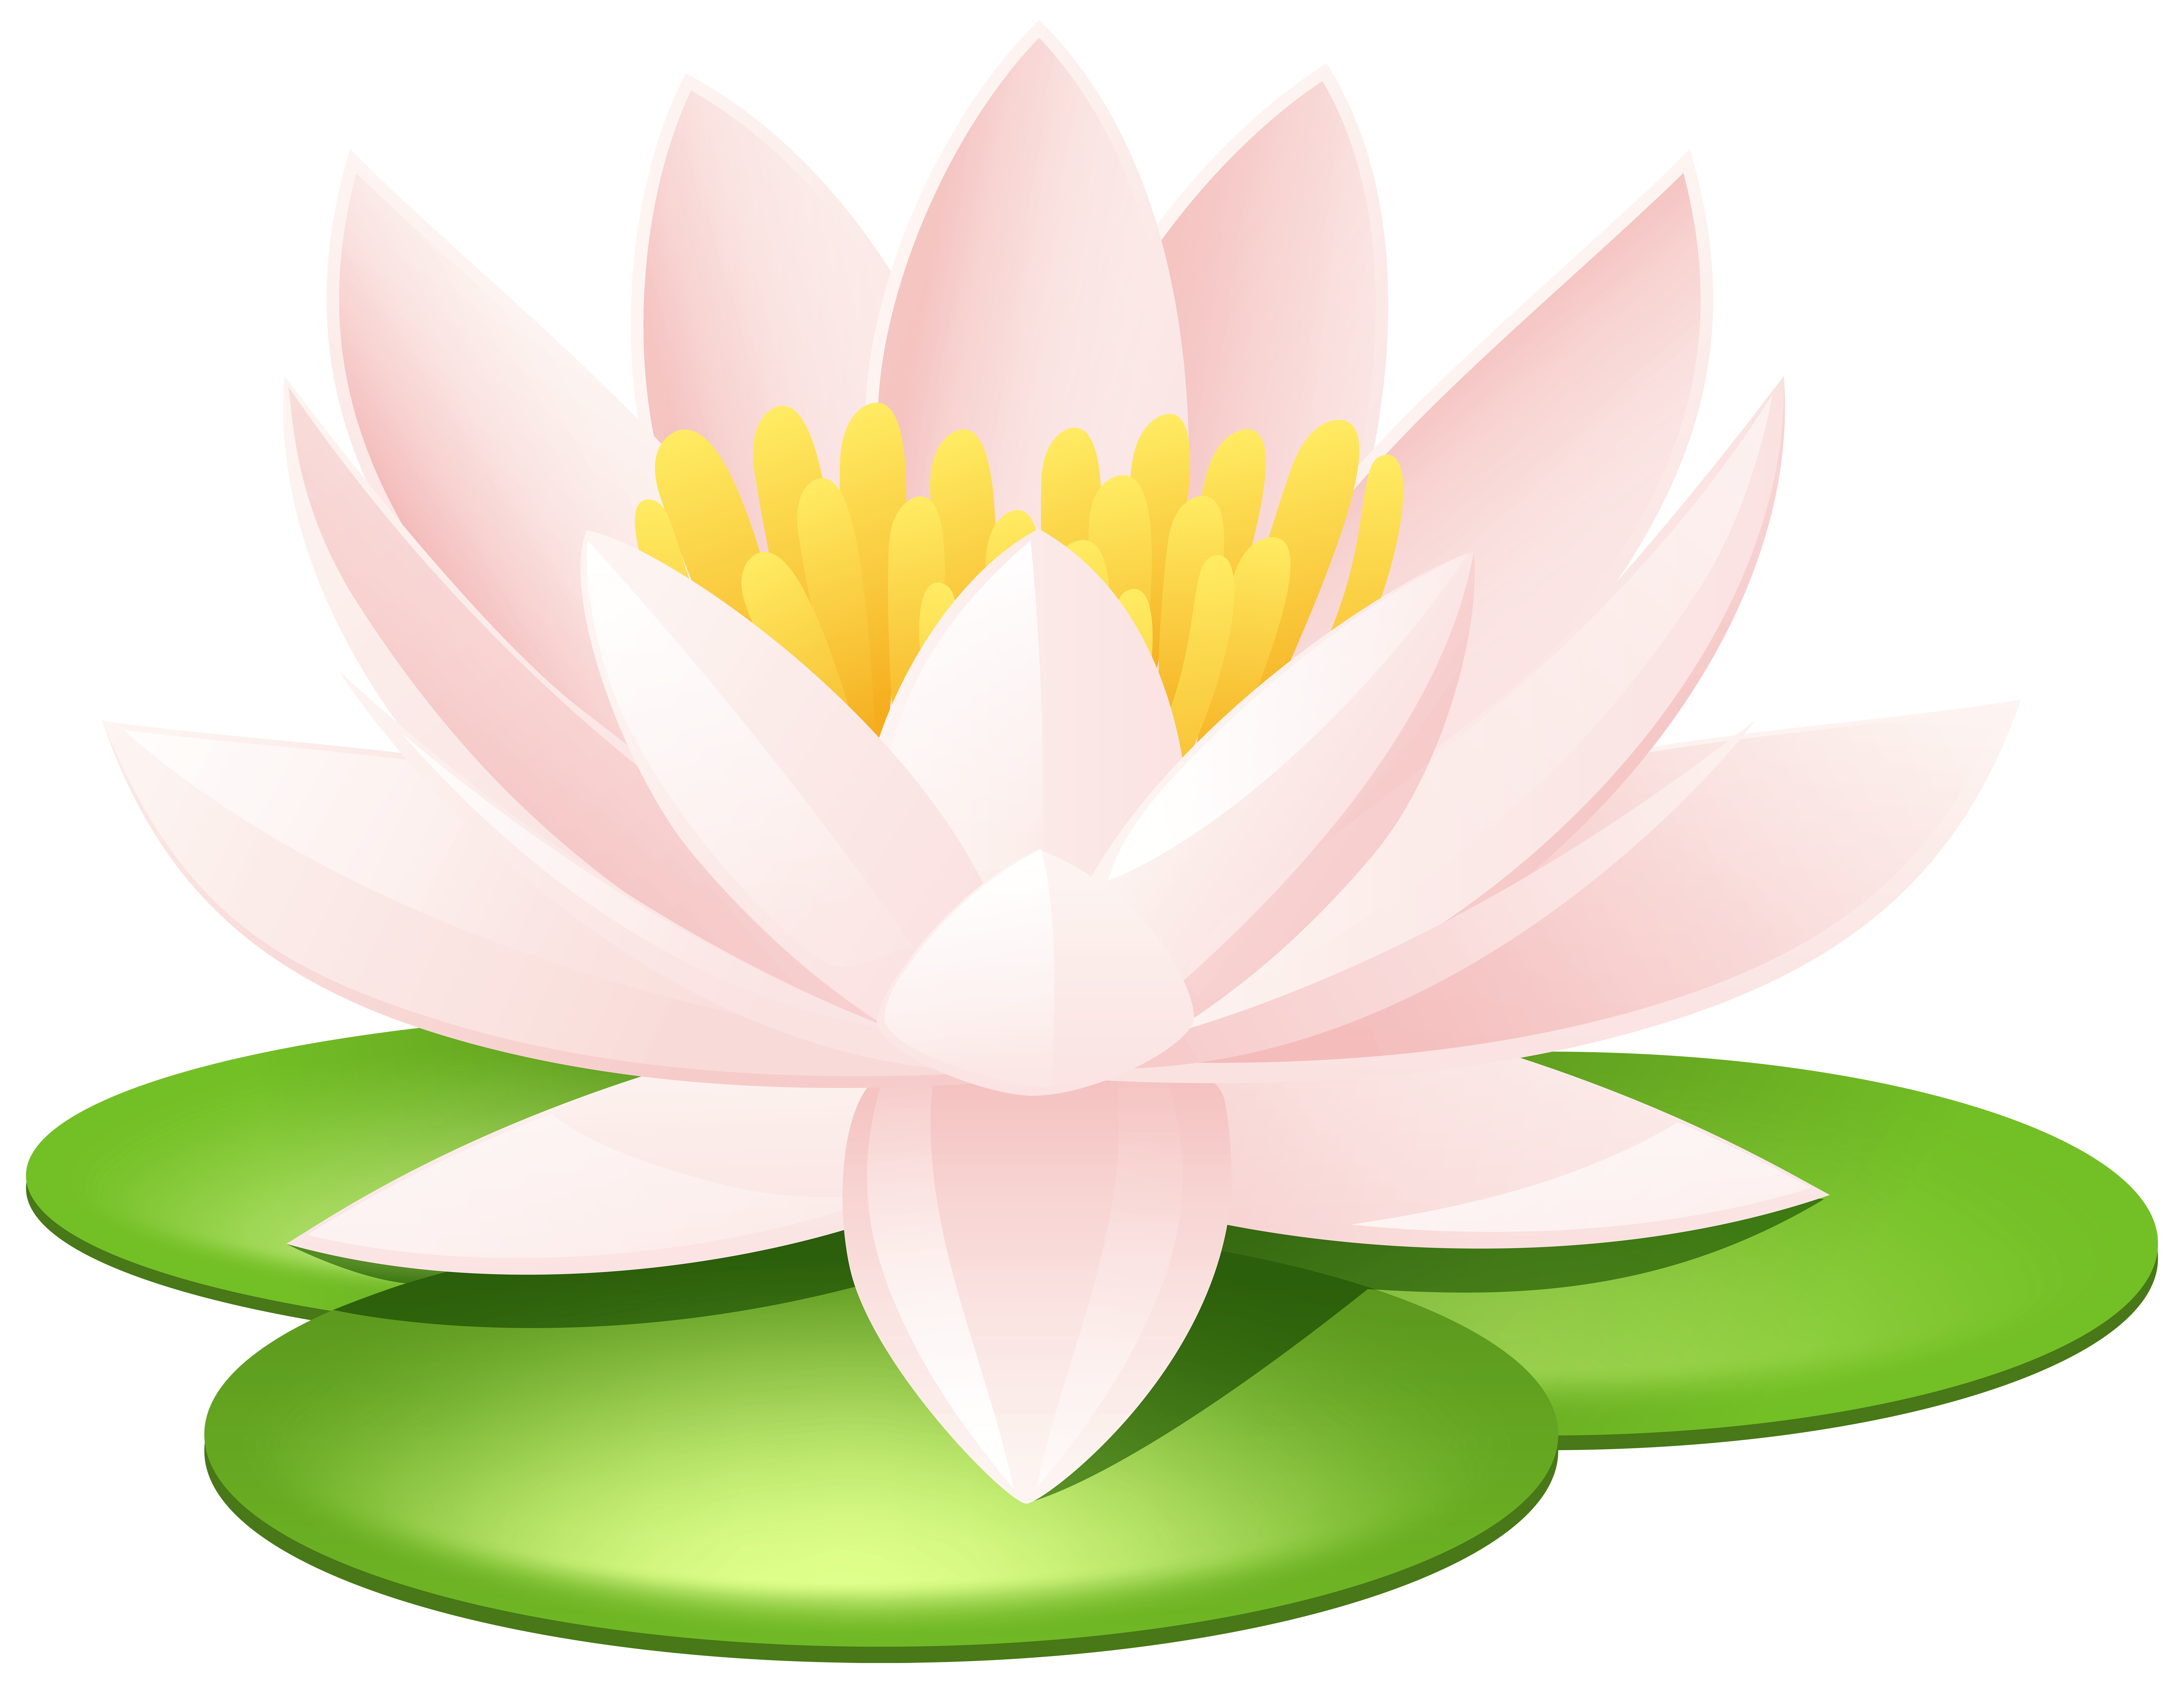 Worm clipart realistic. Water lily transparent png